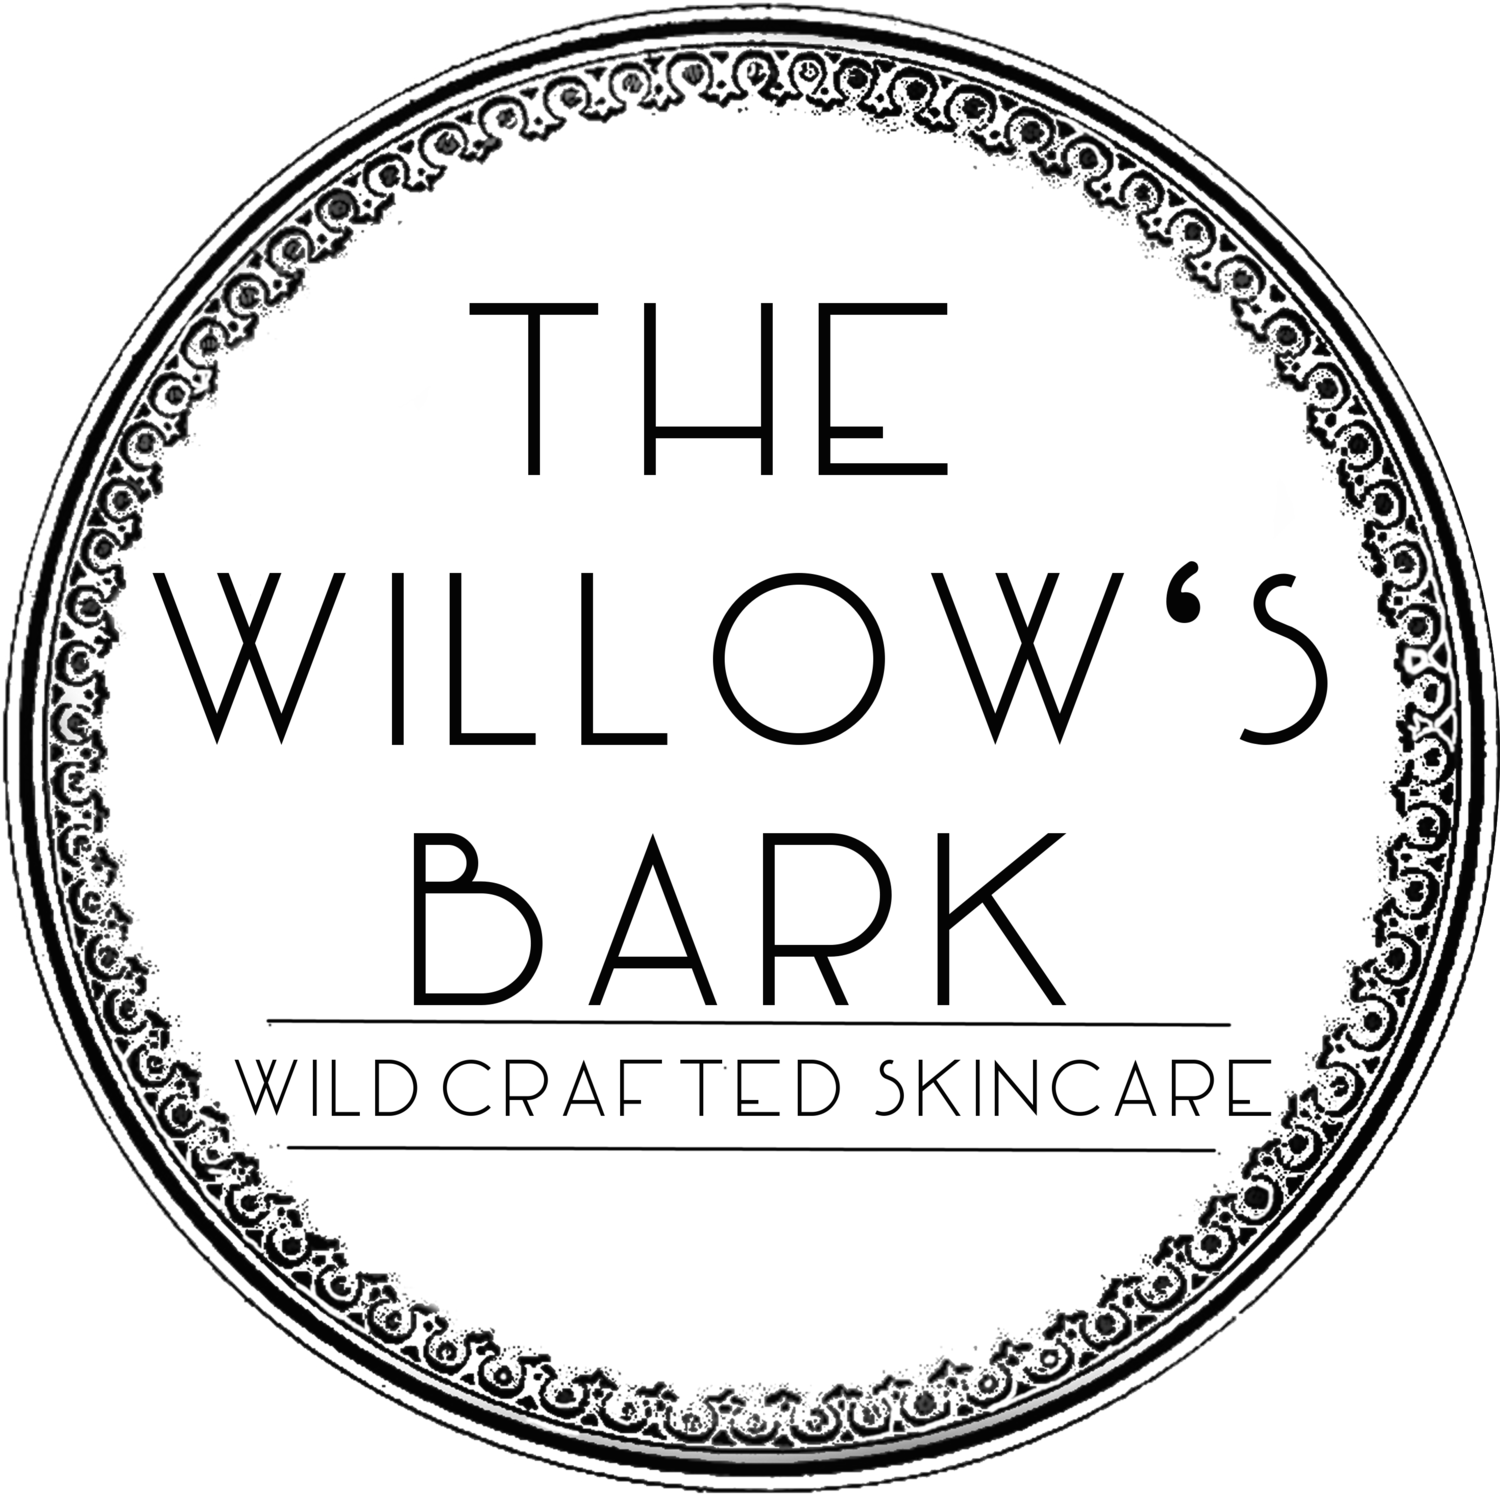 The Willow's Bark